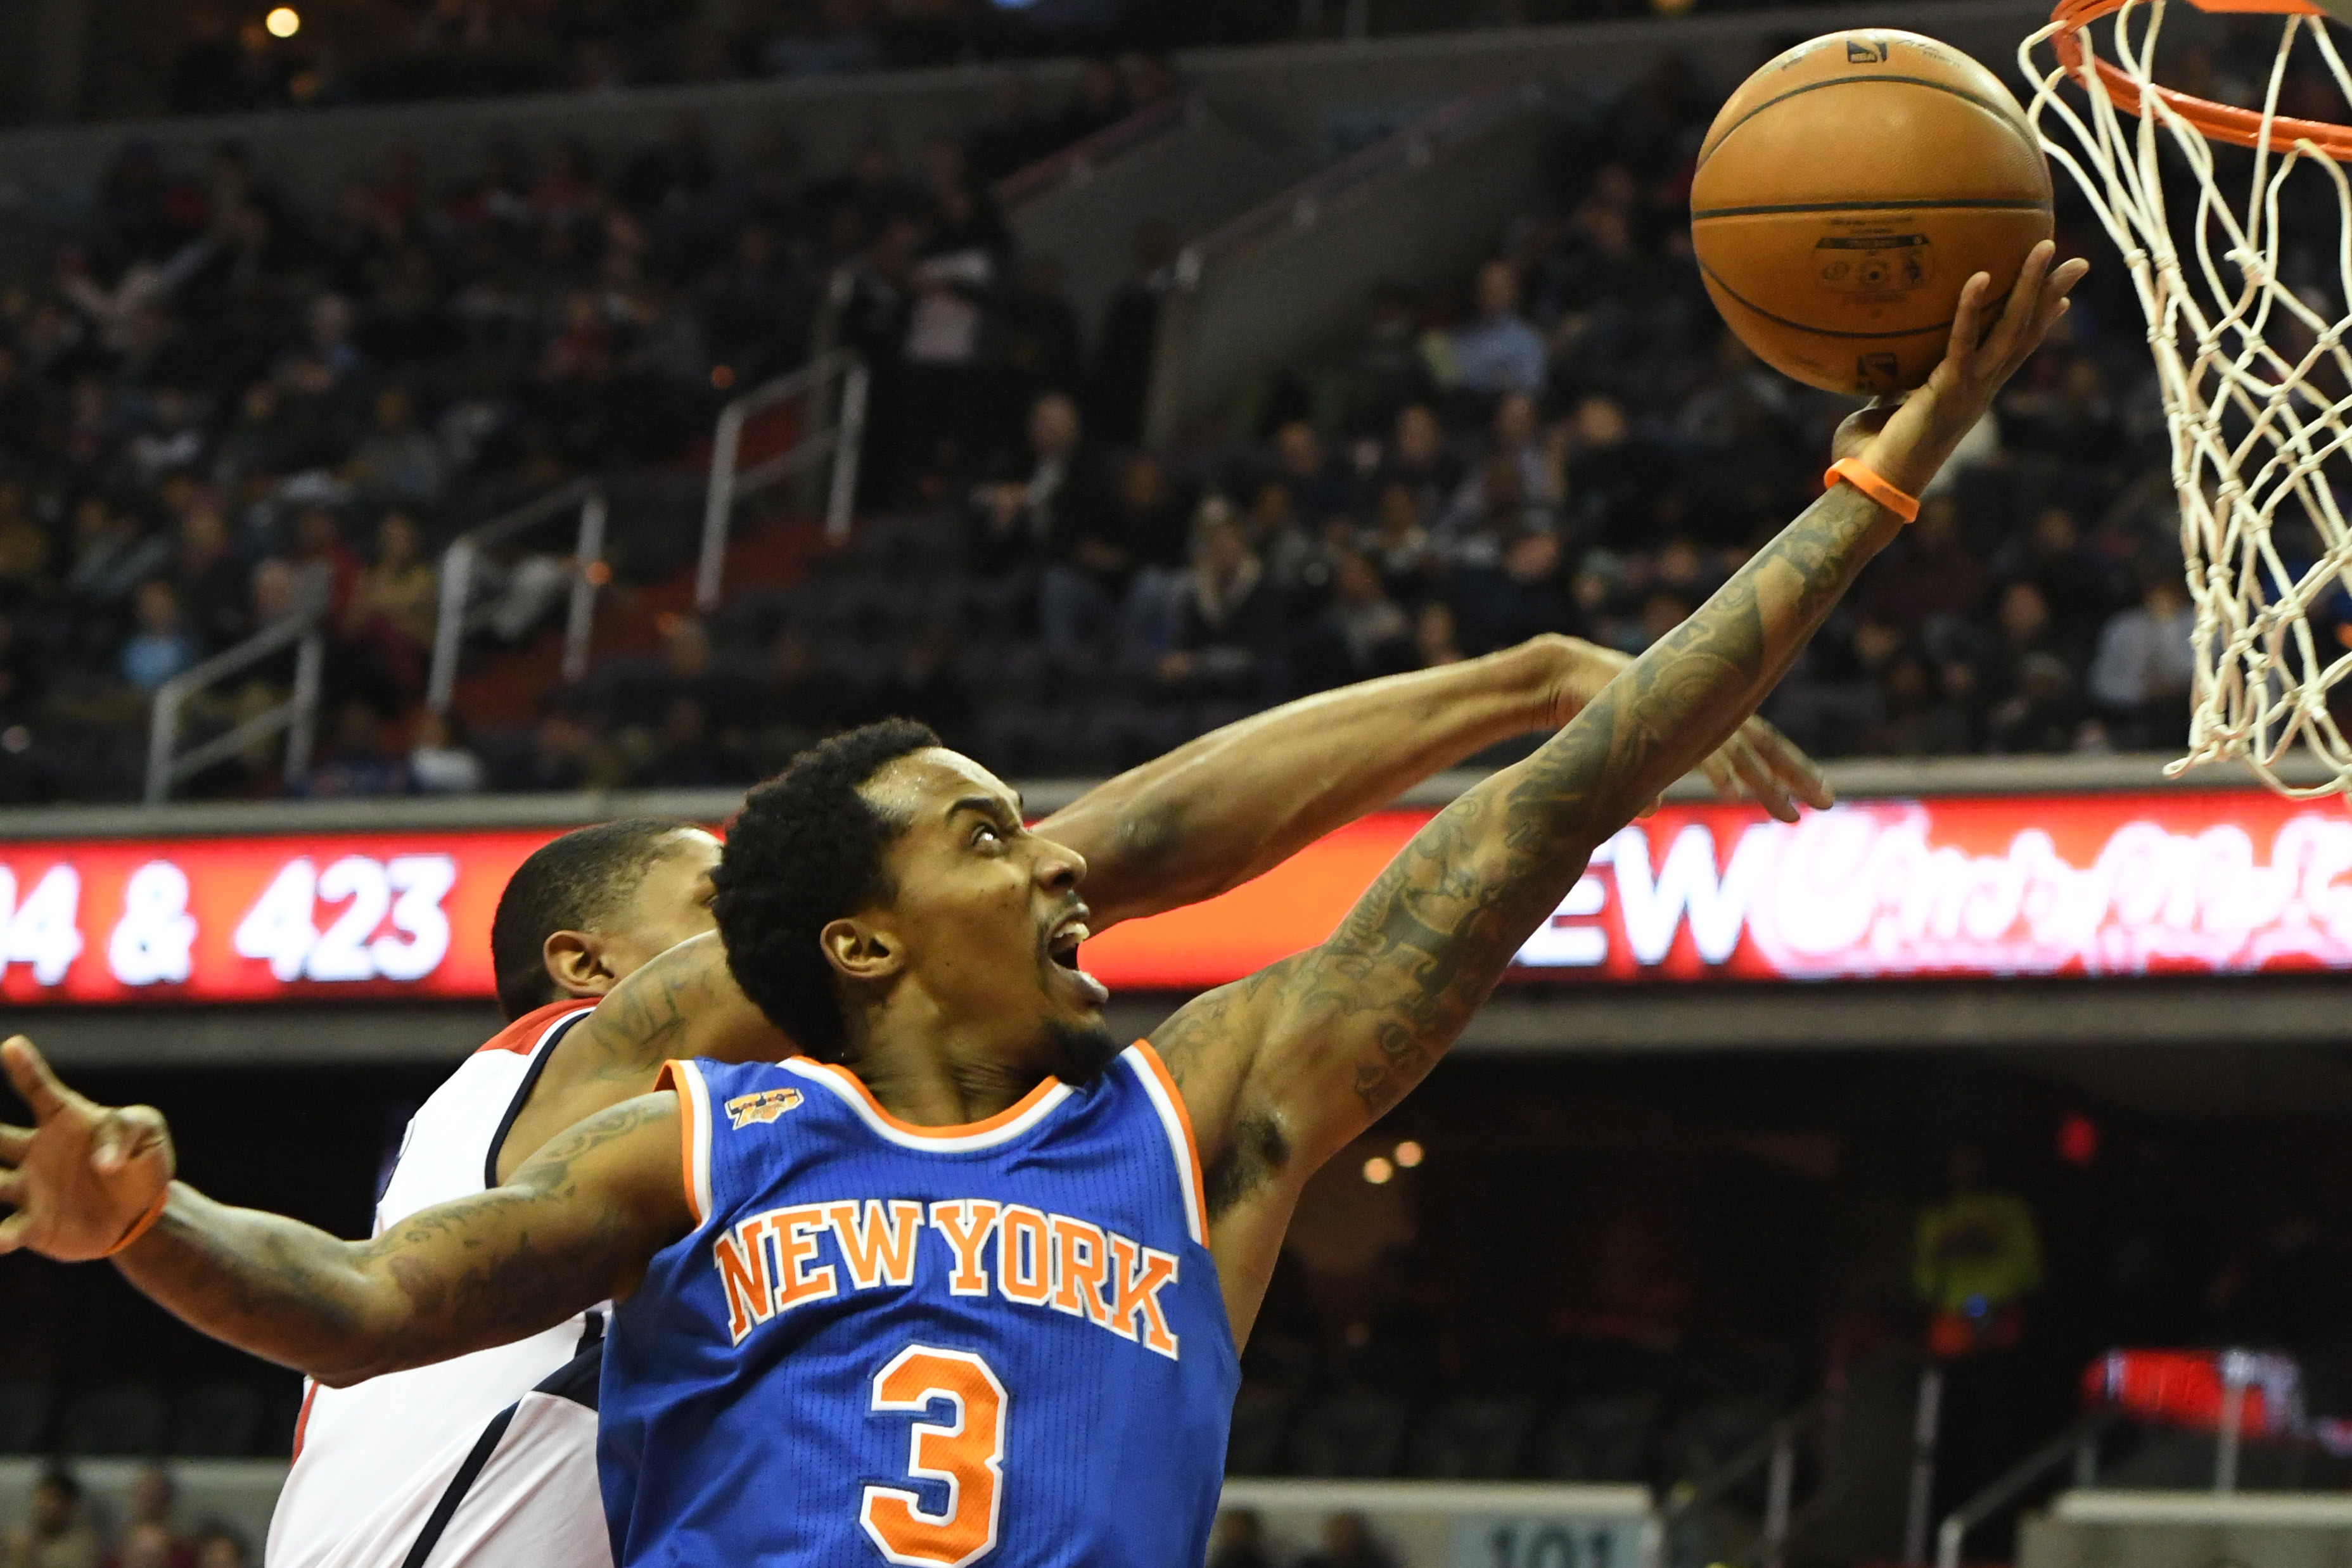 Jan 31, 2017; Washington, DC, USA; New York Knicks guard Brandon Jennings (3) shoots as Washington Wizards forward Otto Porter Jr. (22) defends during the first quarter at Verizon Center. Mandatory Credit: Tommy Gilligan-USA TODAY Sports